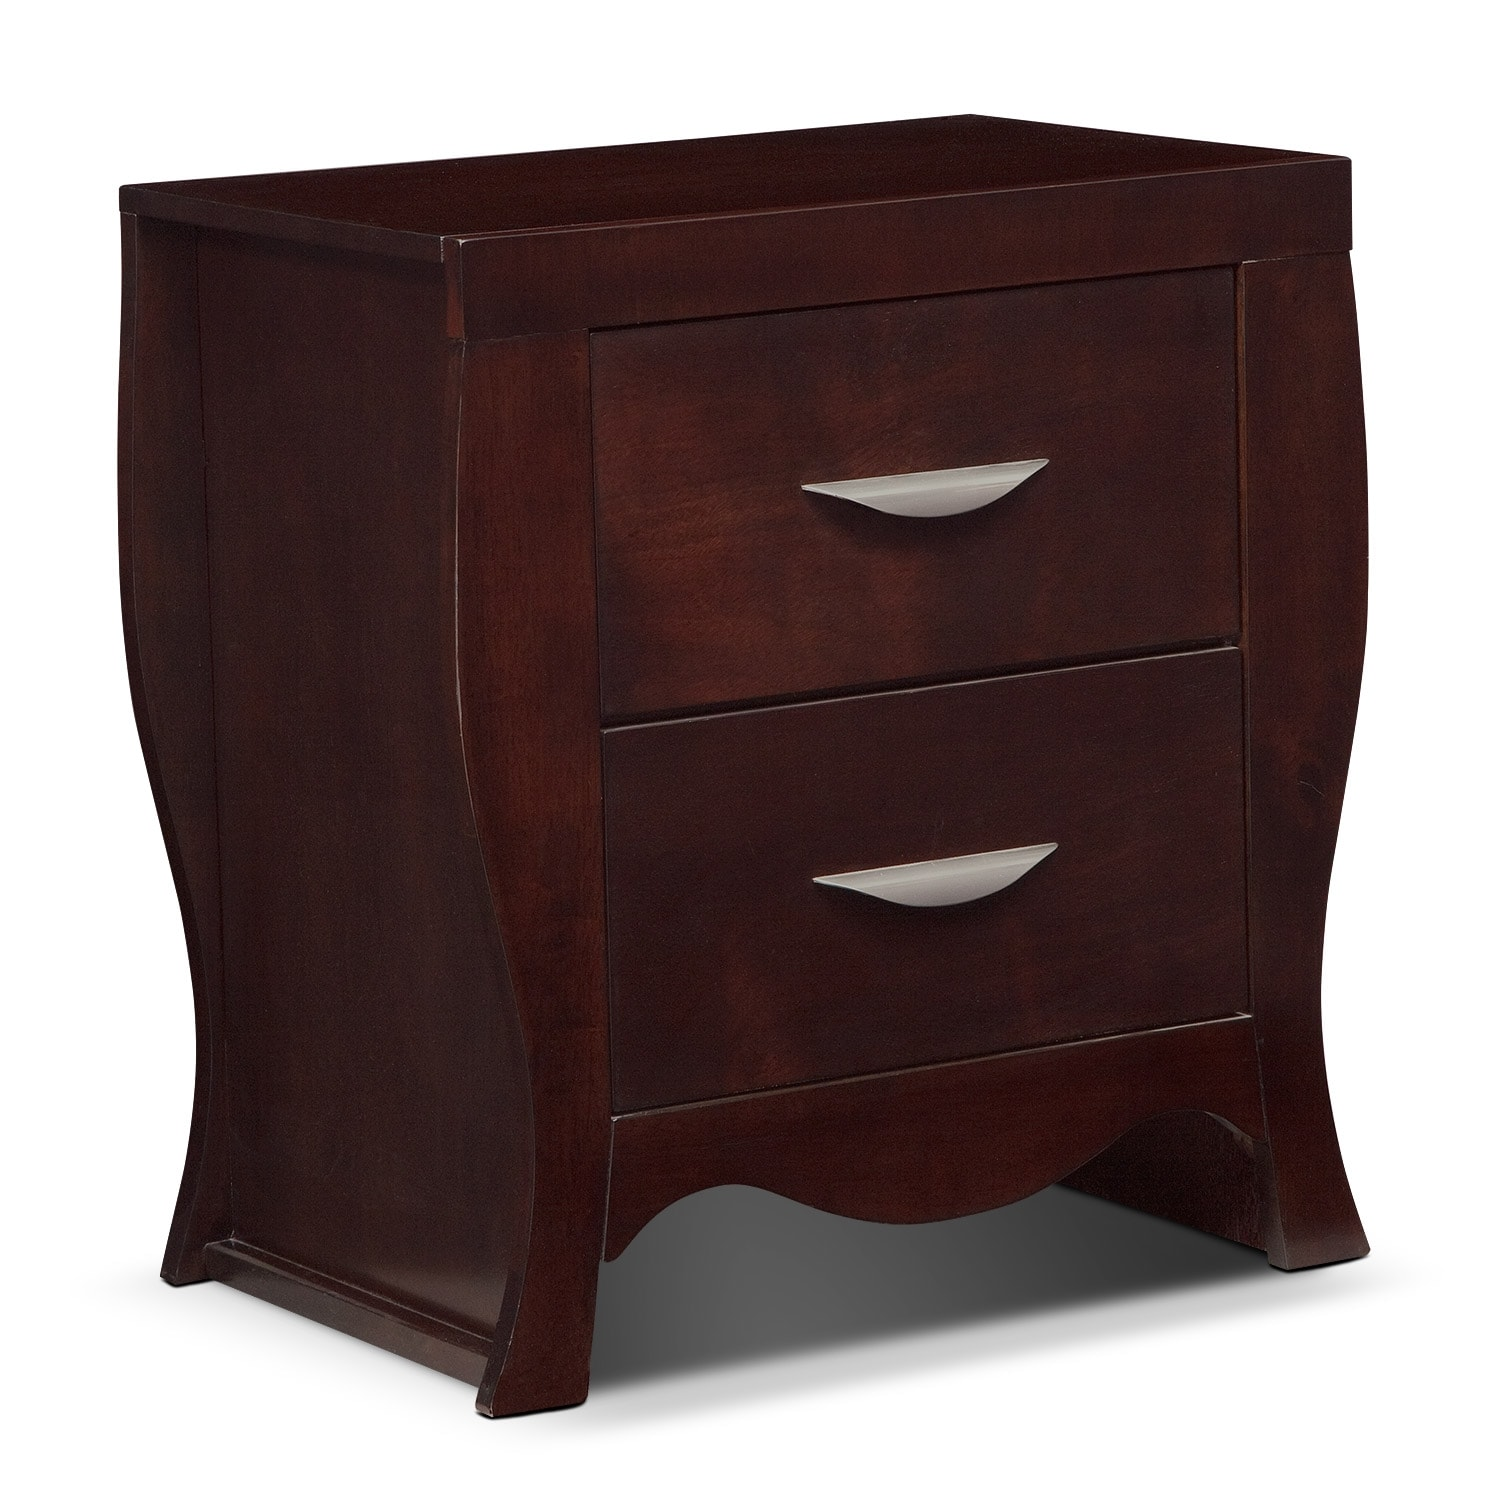 Bedroom Furniture - Jaden Nightstand - Merlot